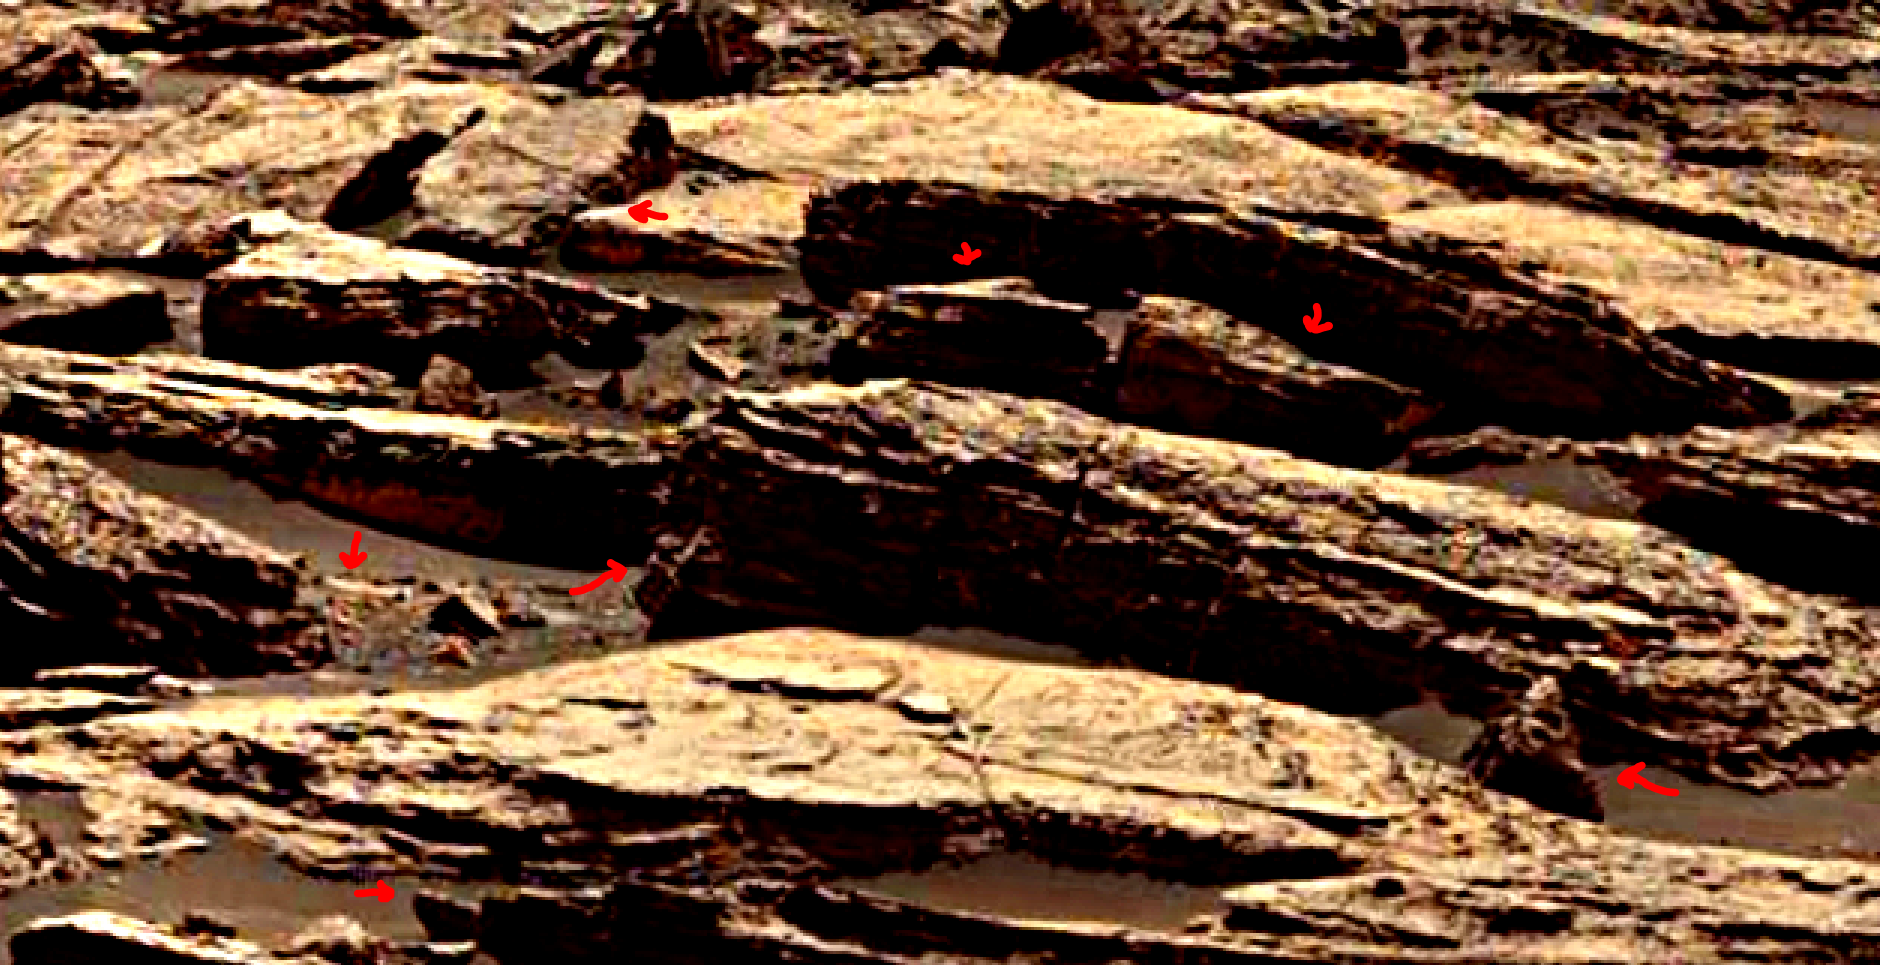 mars-sol-1489-anomaly-artifacts-5-was-life-on-mars